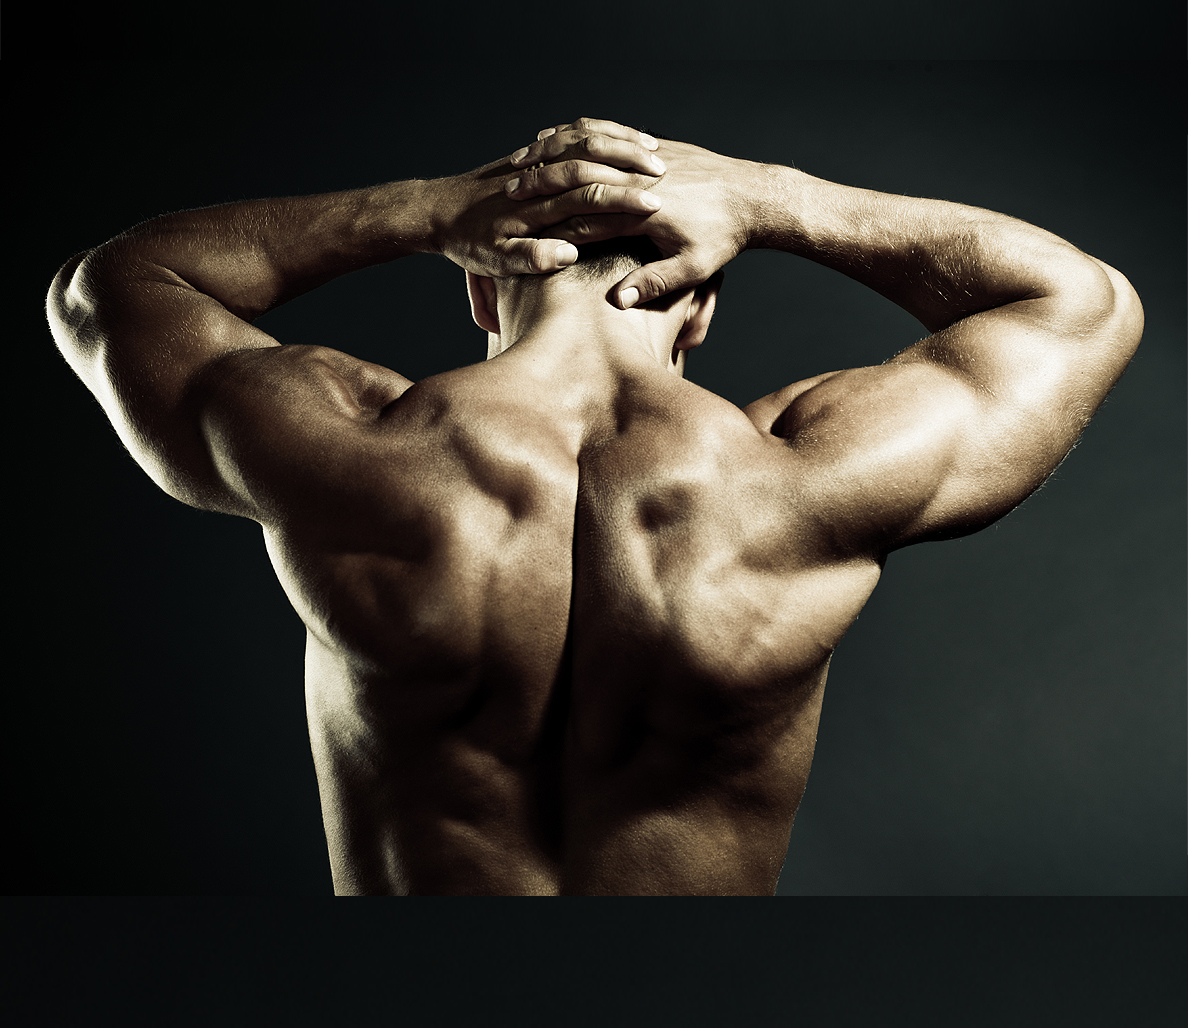 The Back and Biceps Workout to Build Muscle Fast